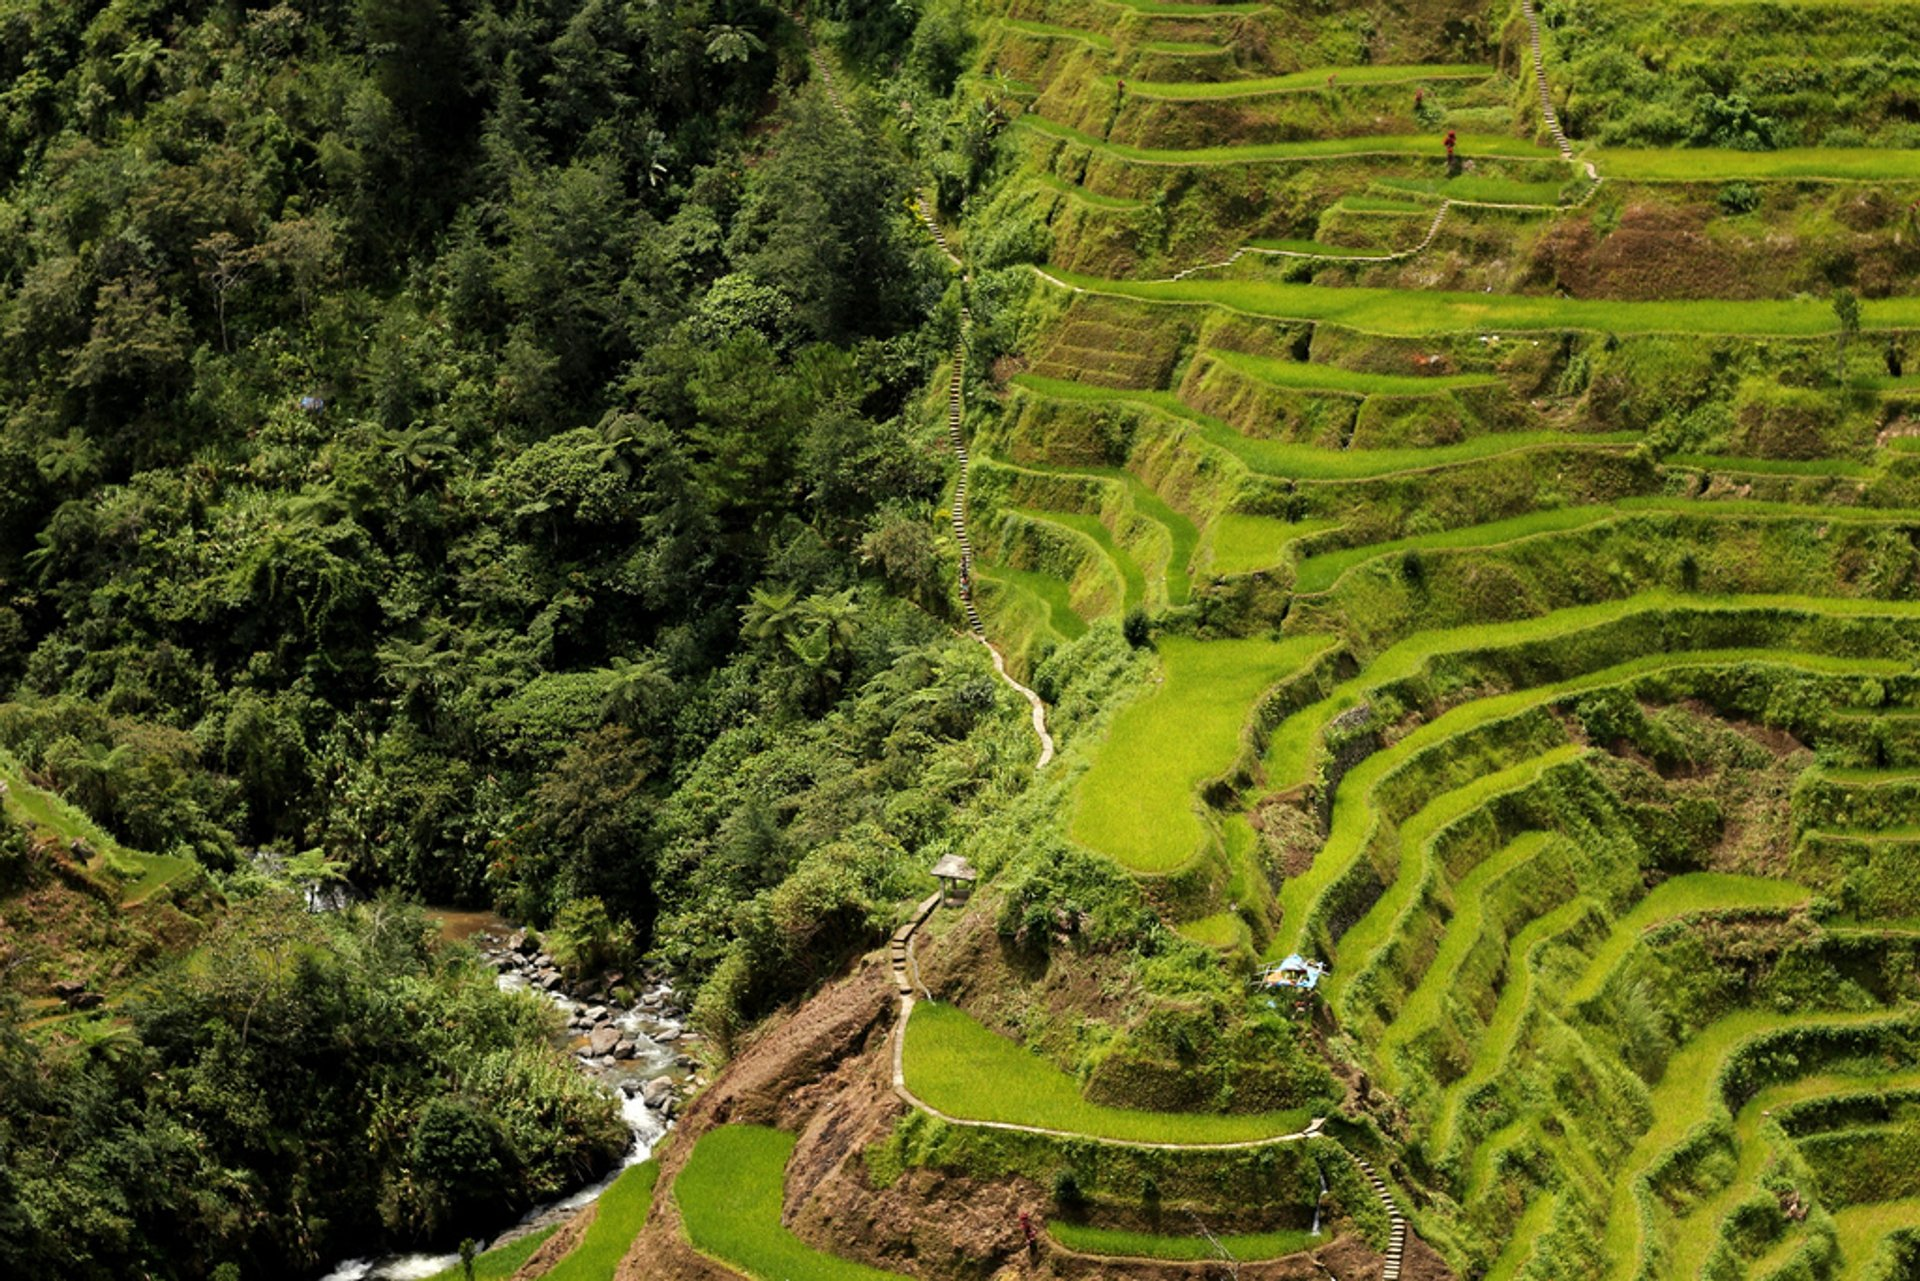 Banaue and Batad Rice Terraces in Philippines 2019 - Best Time